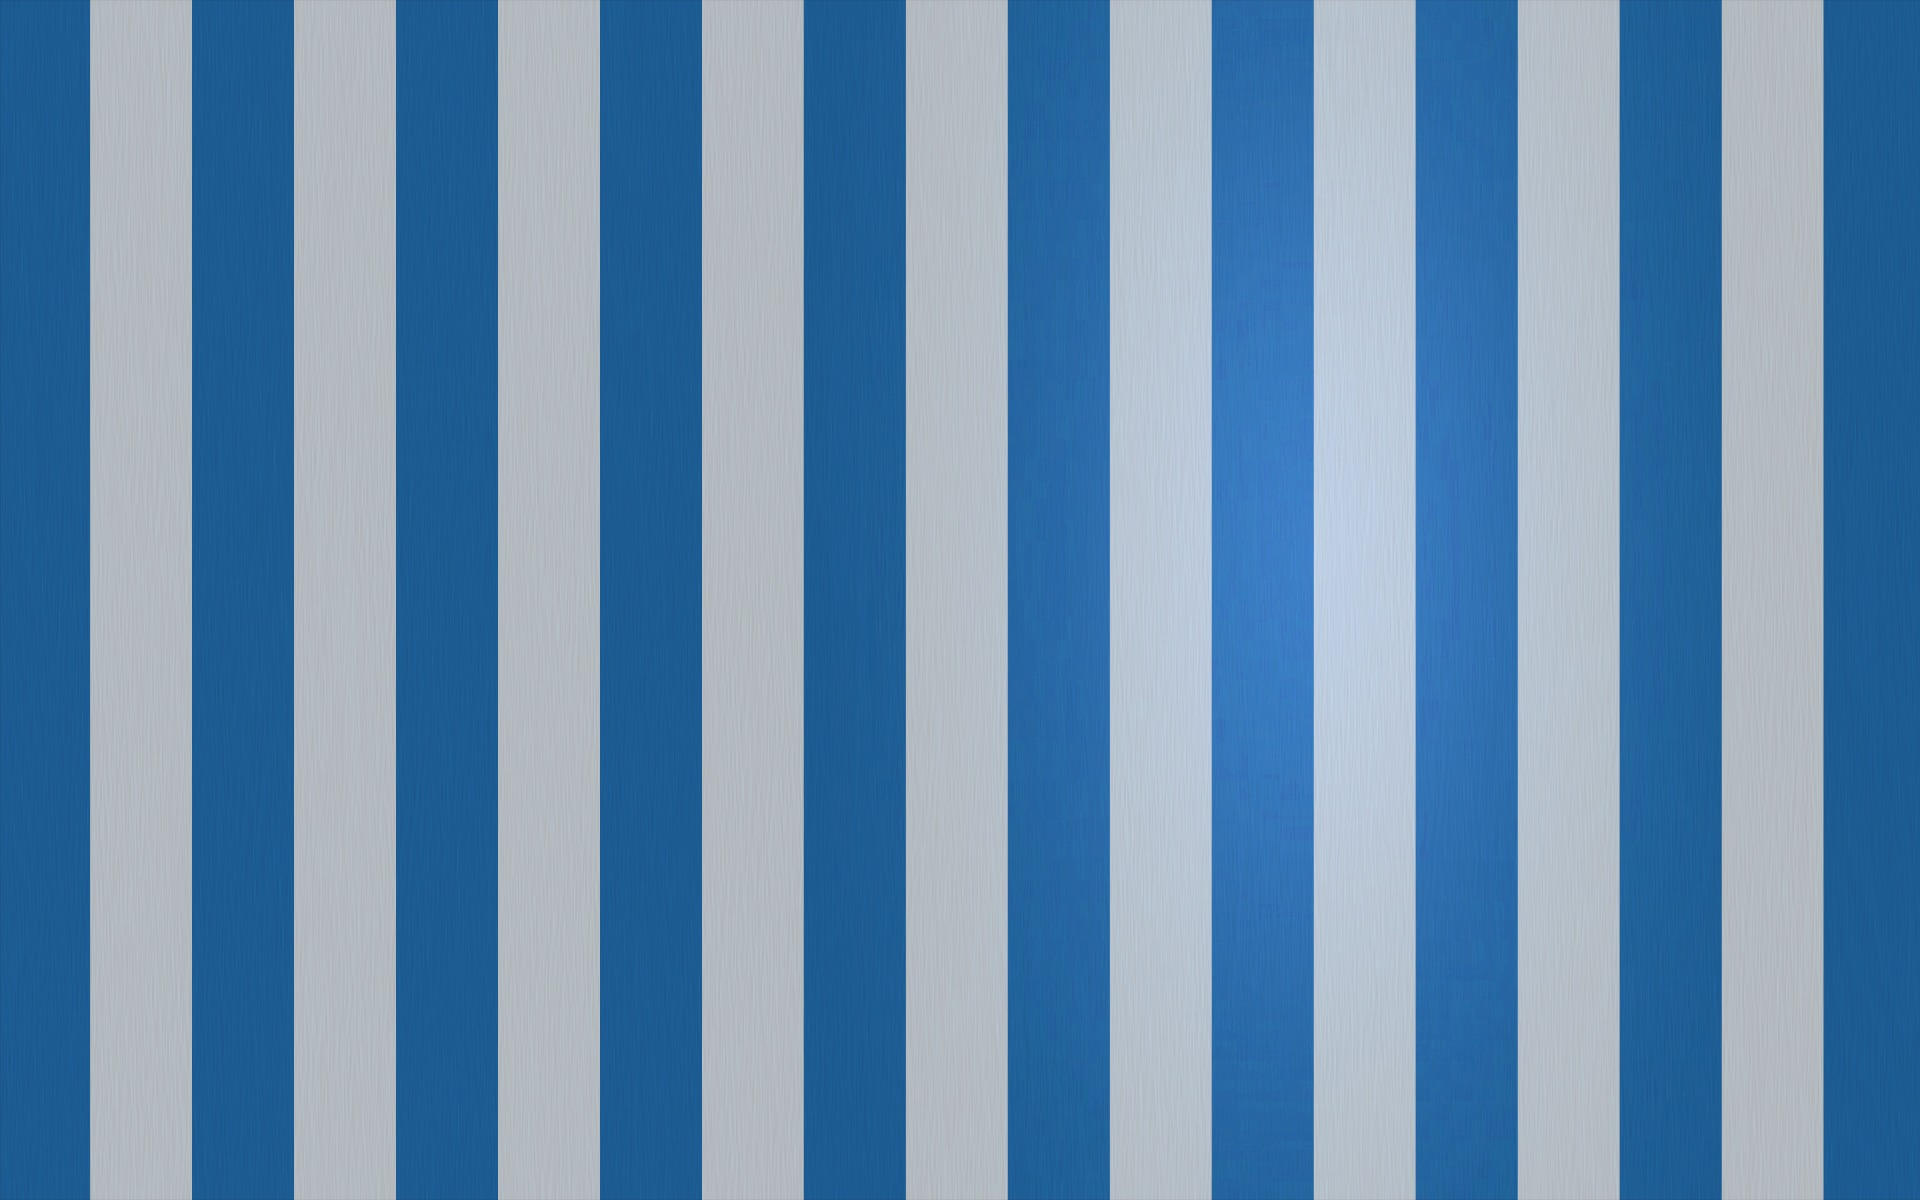 Blue white stripes texture wallpaper   ForWallpapercom 1920x1200